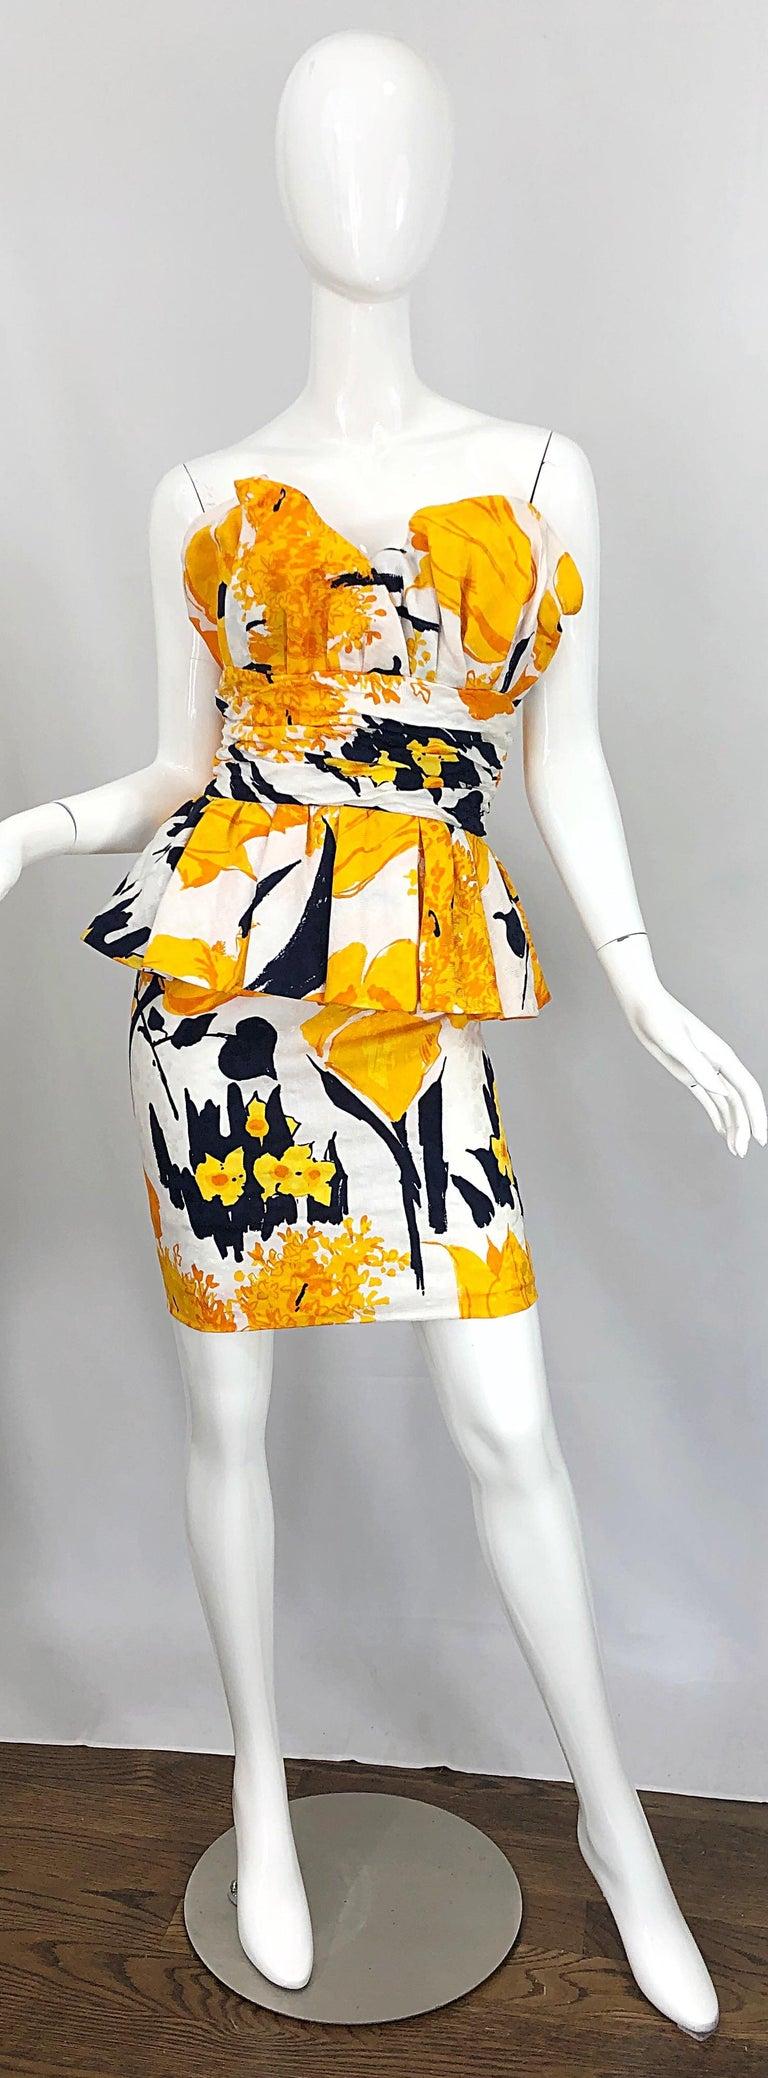 Avant Garde 1980s ARMEN WARDY yellow, black, marigold and white strapless silk mini dress! Features abstract flower prints throughout. Heavy attention to detail with built in support to hold everything in place. Flattering peplum at hips. Hidden